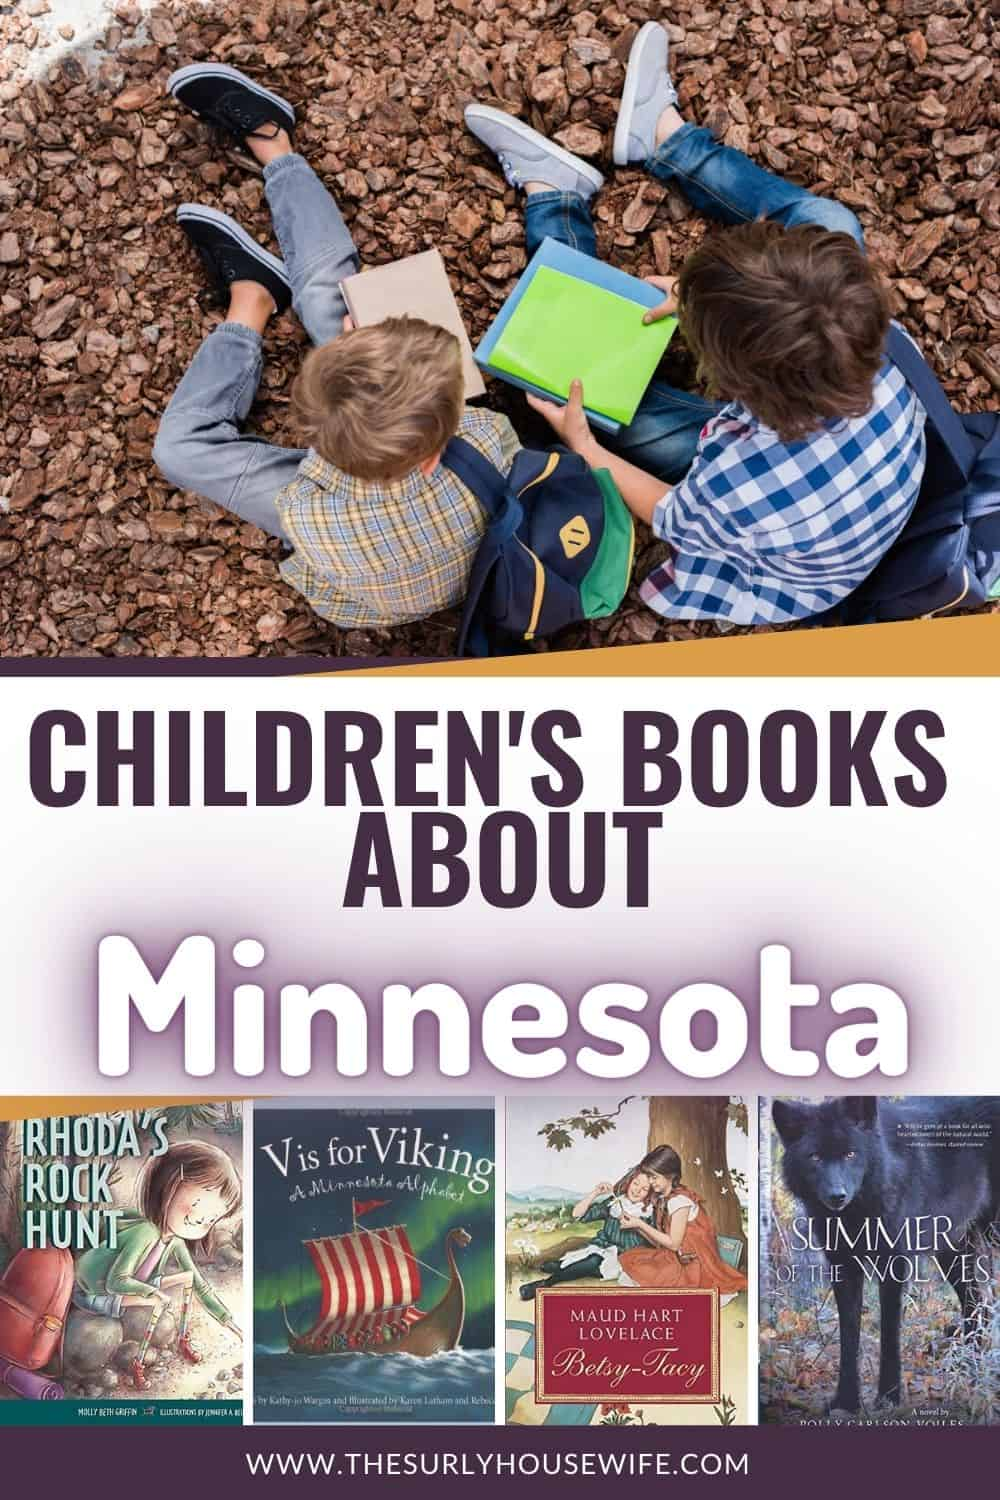 Searching for books about Minnesota? This book list includes pictures books and chapters books about and set in Minnesota!